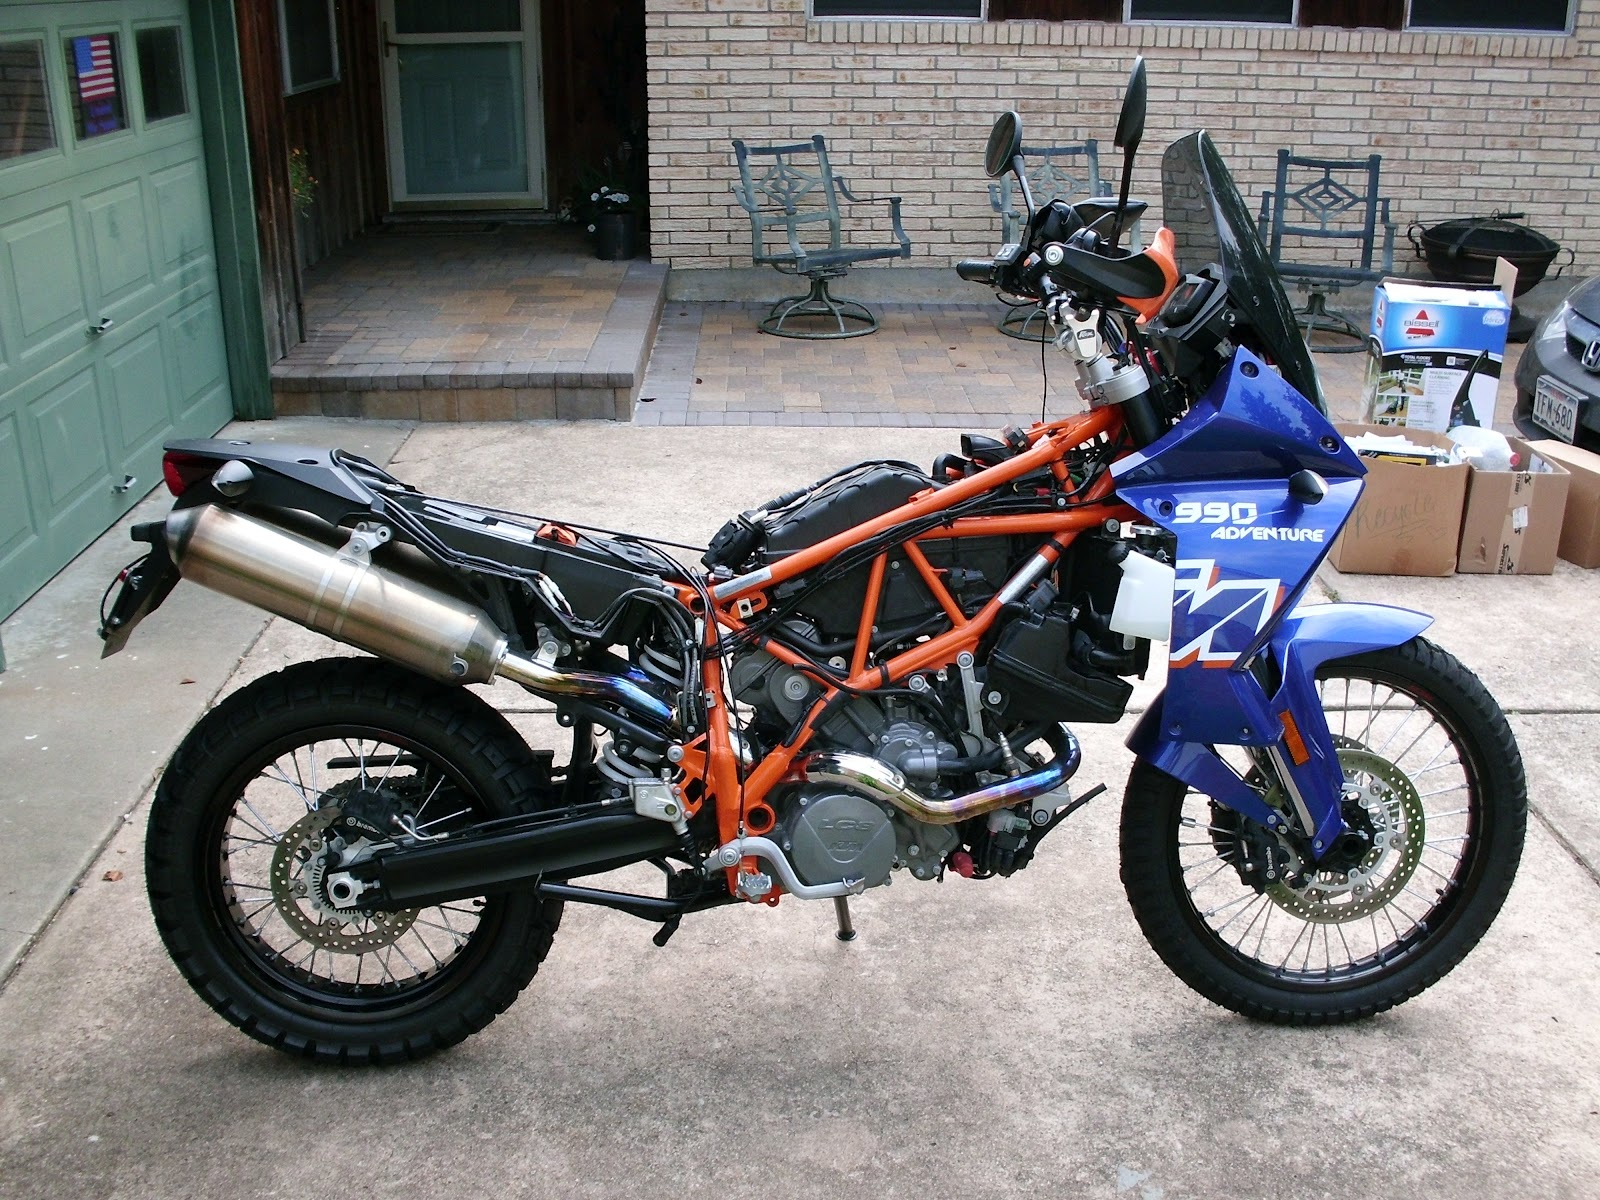 The End Of World At Bikes Ktm 990 Fuse Box I Ended Up Splitting Rostra Control In Two Putting Circuit Board A Made Behind Headlight And